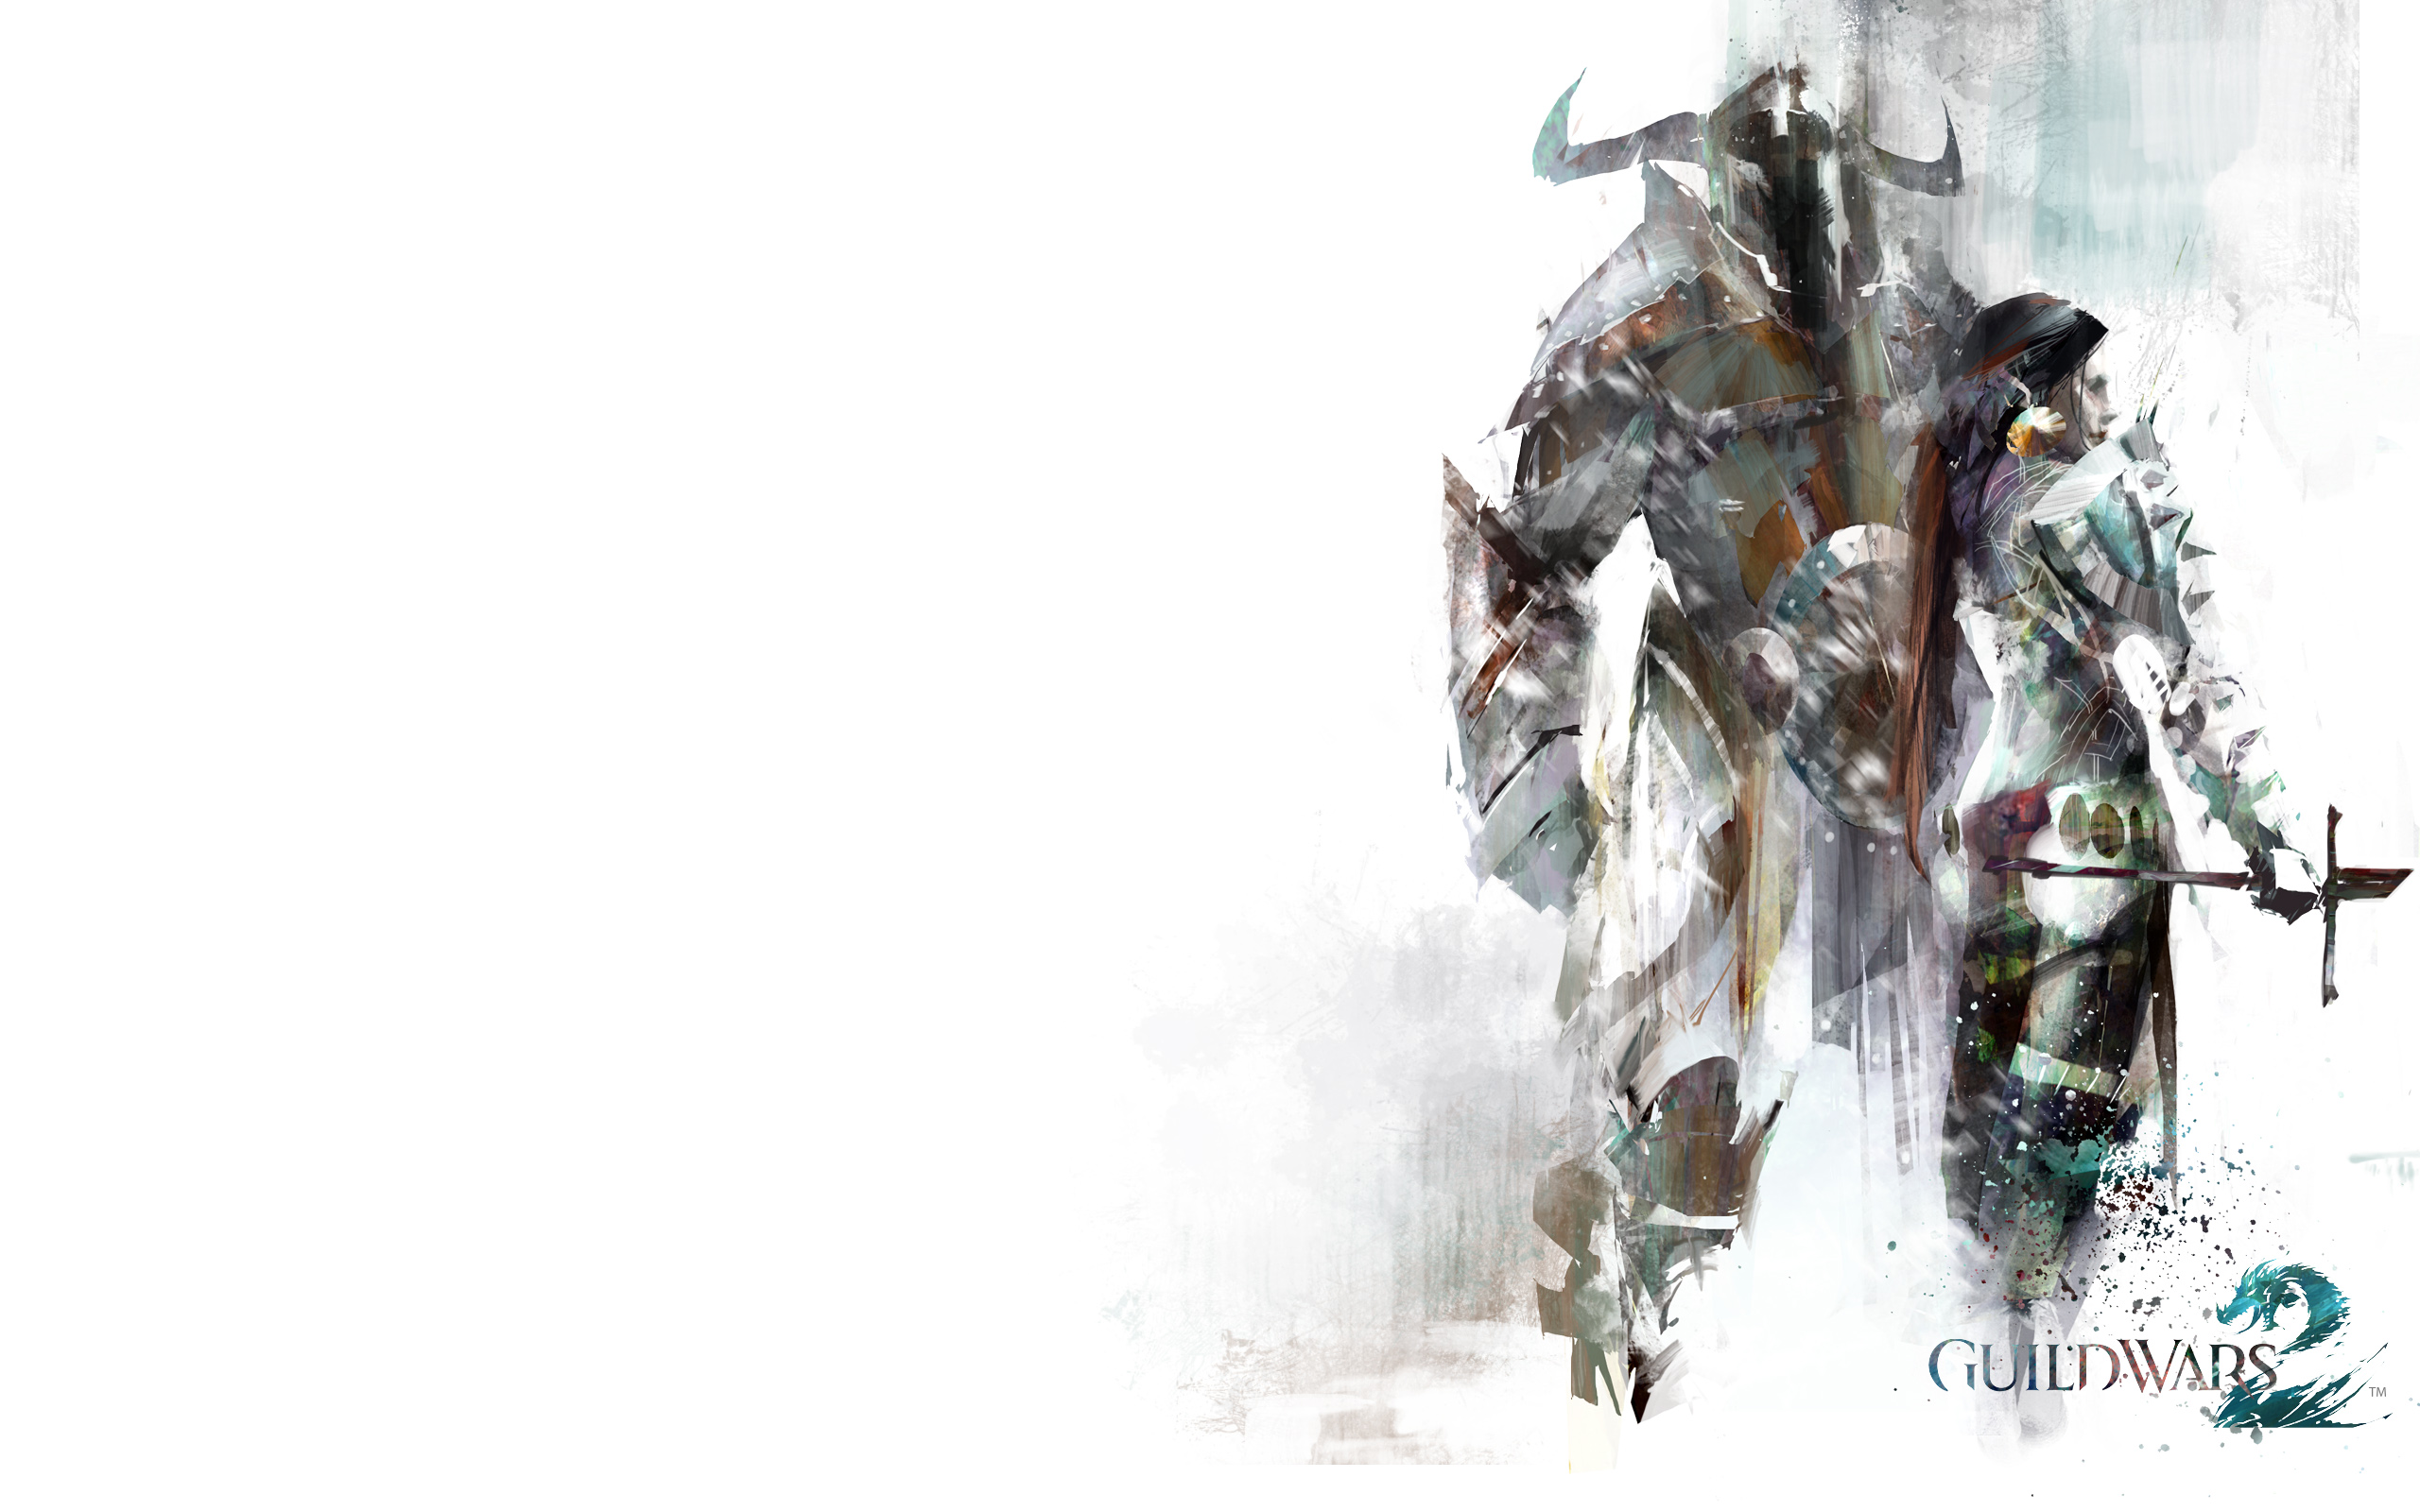 Guild Wars 2 wallpaper 28